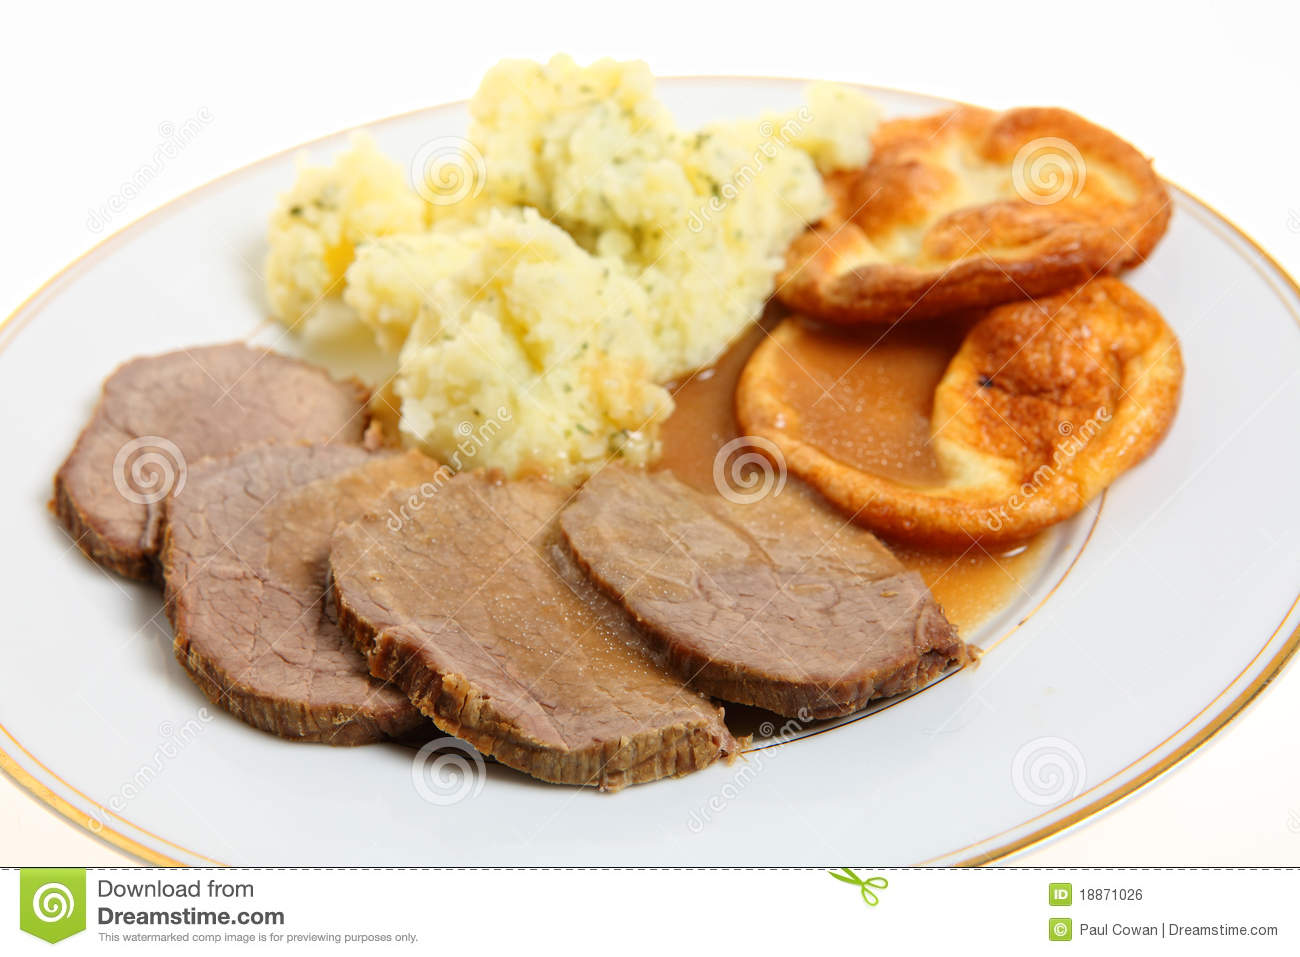 how to cook roast beef and yorkshire pudding